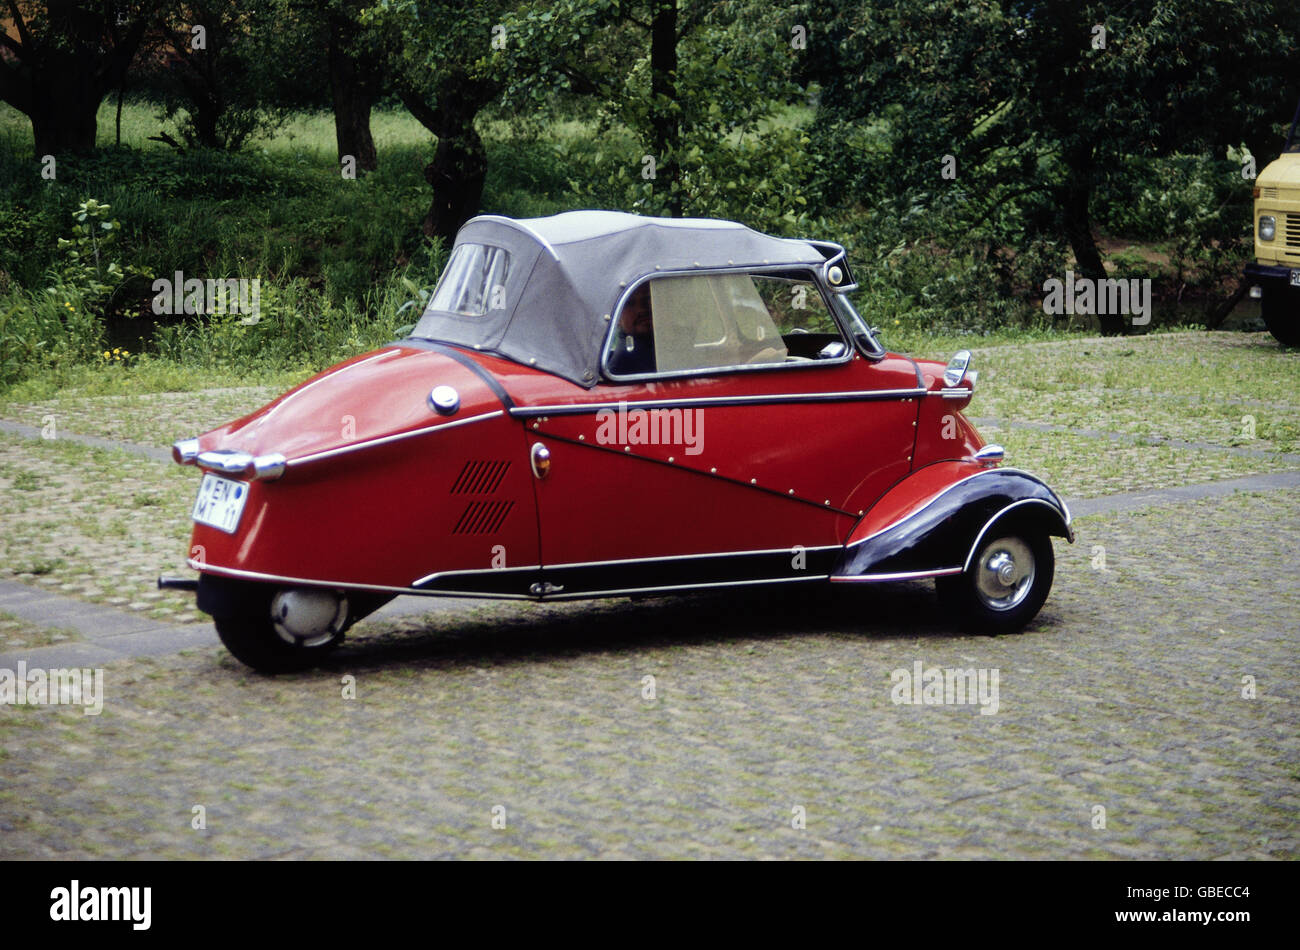 transport / transportation, car, vehicle variants, Messerschmitt, bubble car, 20th century, historic, historical, - Stock Image